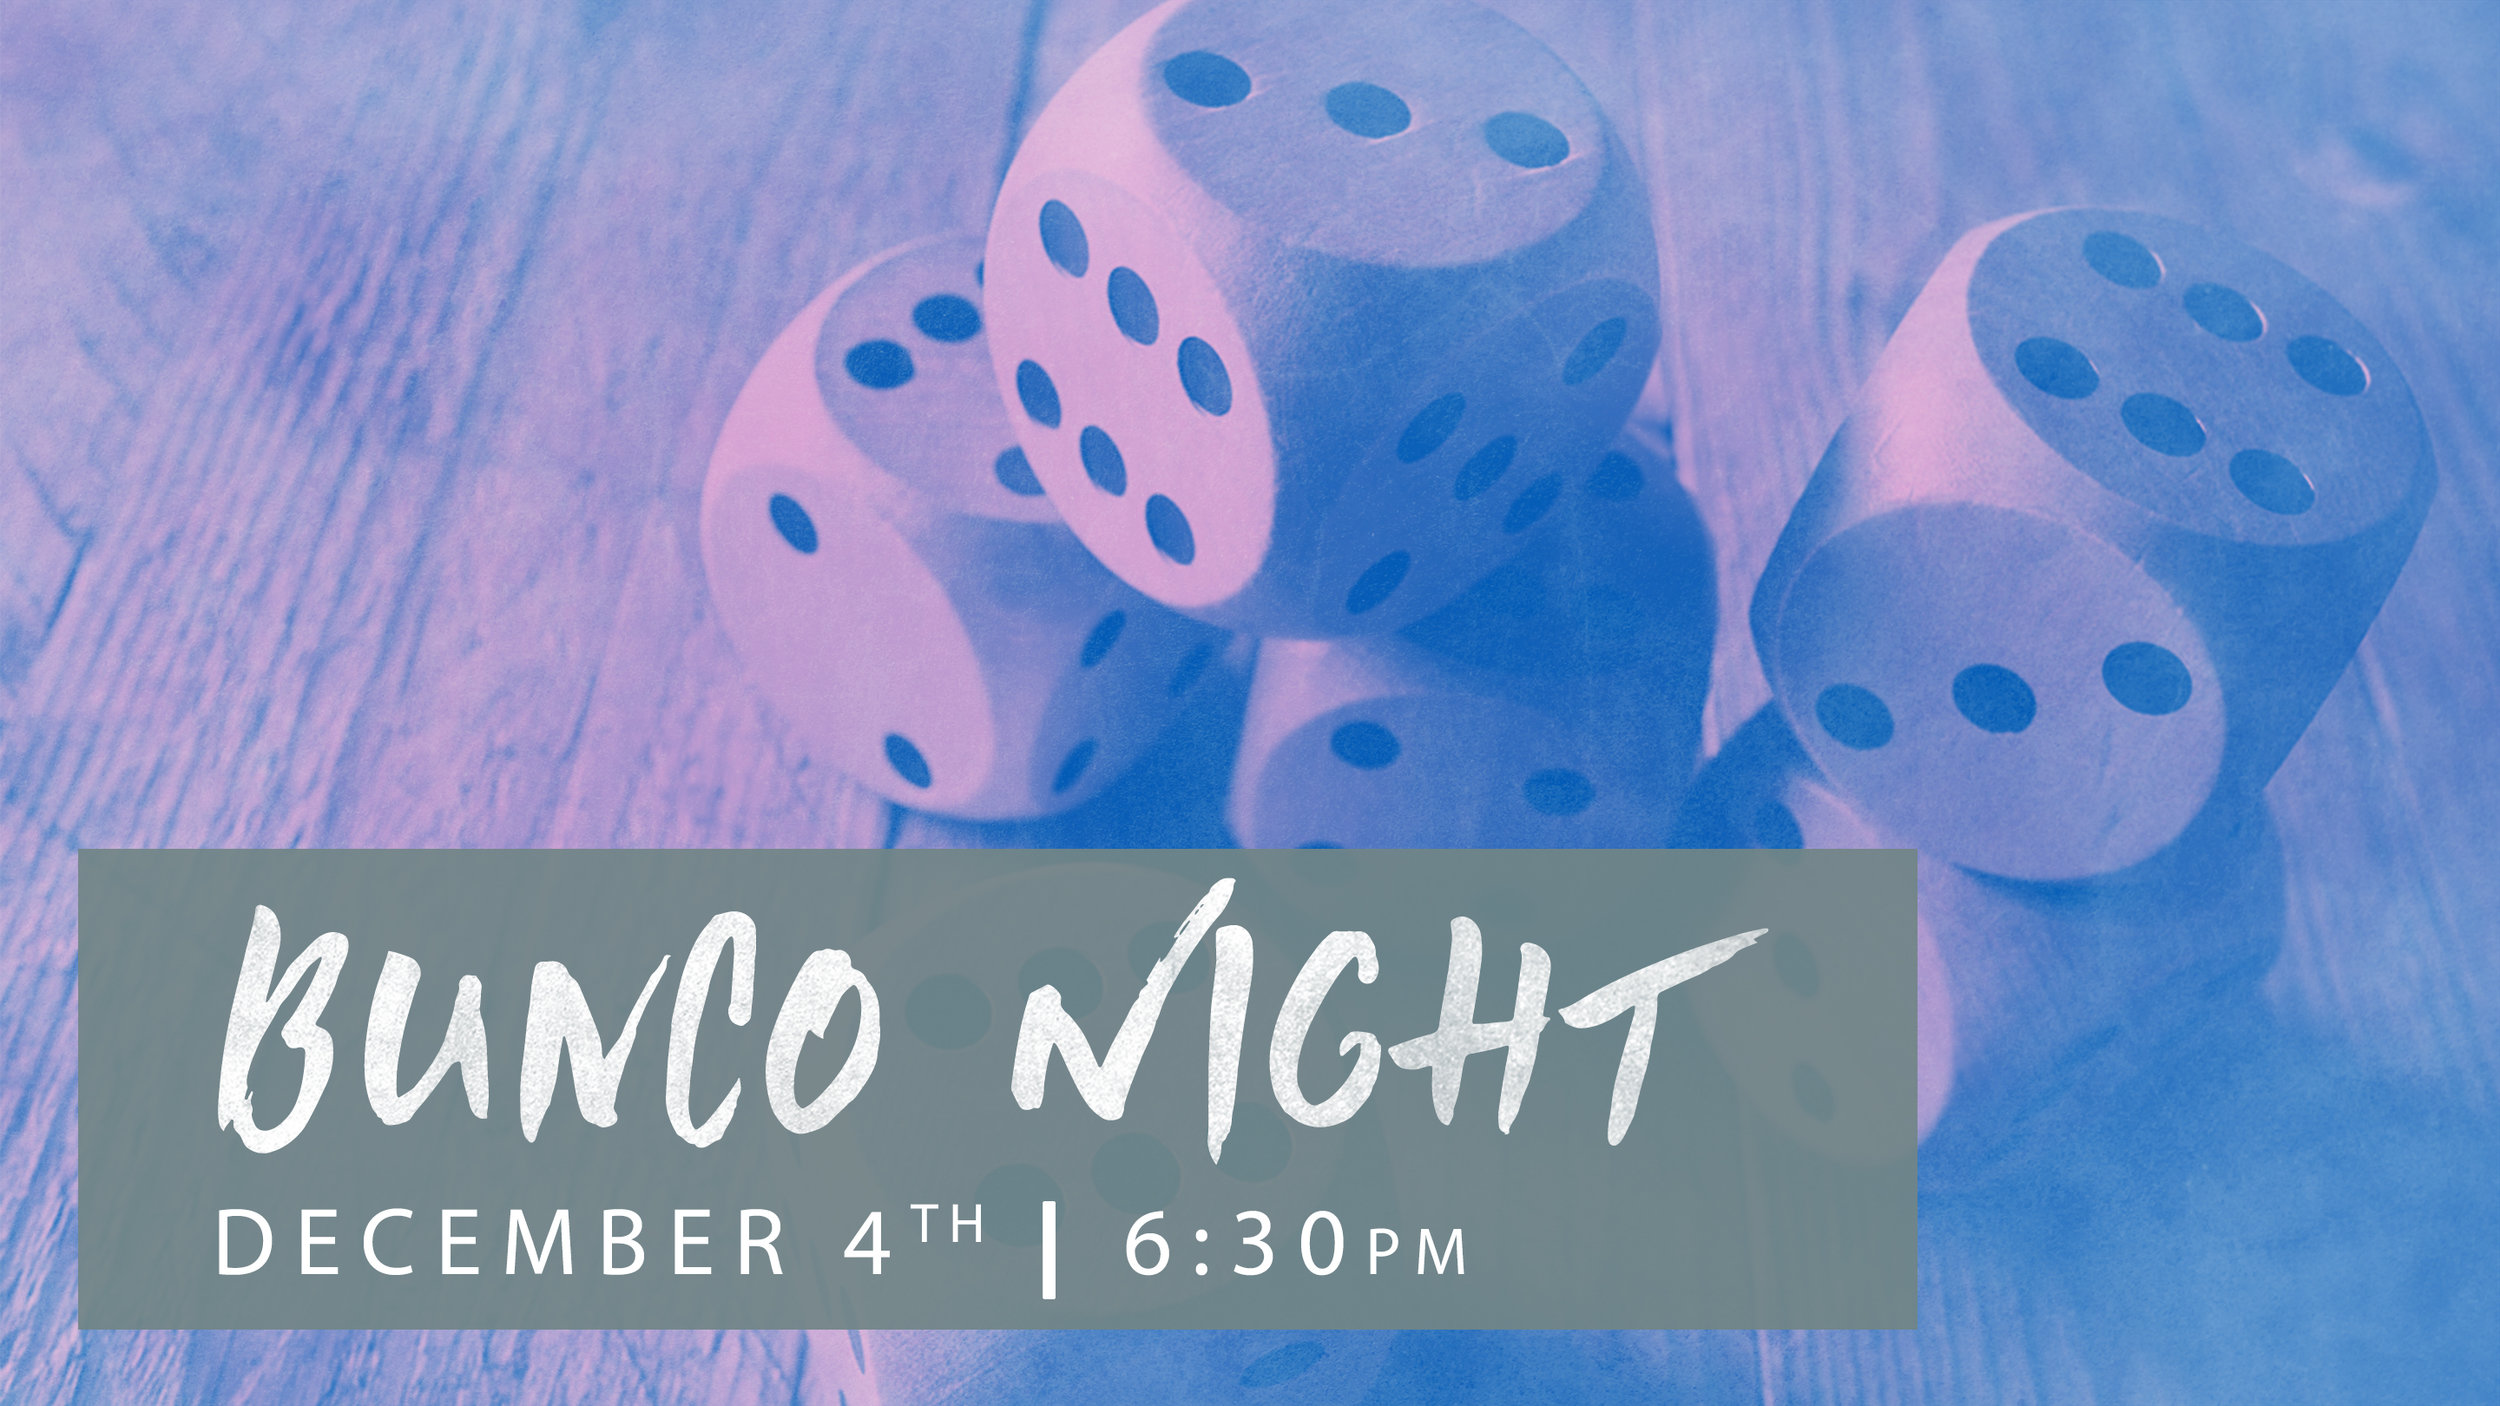 Ladies, Bunco night  is coming up on Monday, Dec. 4th at 6:30PM in the Coffee Shop. It's going to be a lot of fun so make plans now to be there. And bring a friend too!